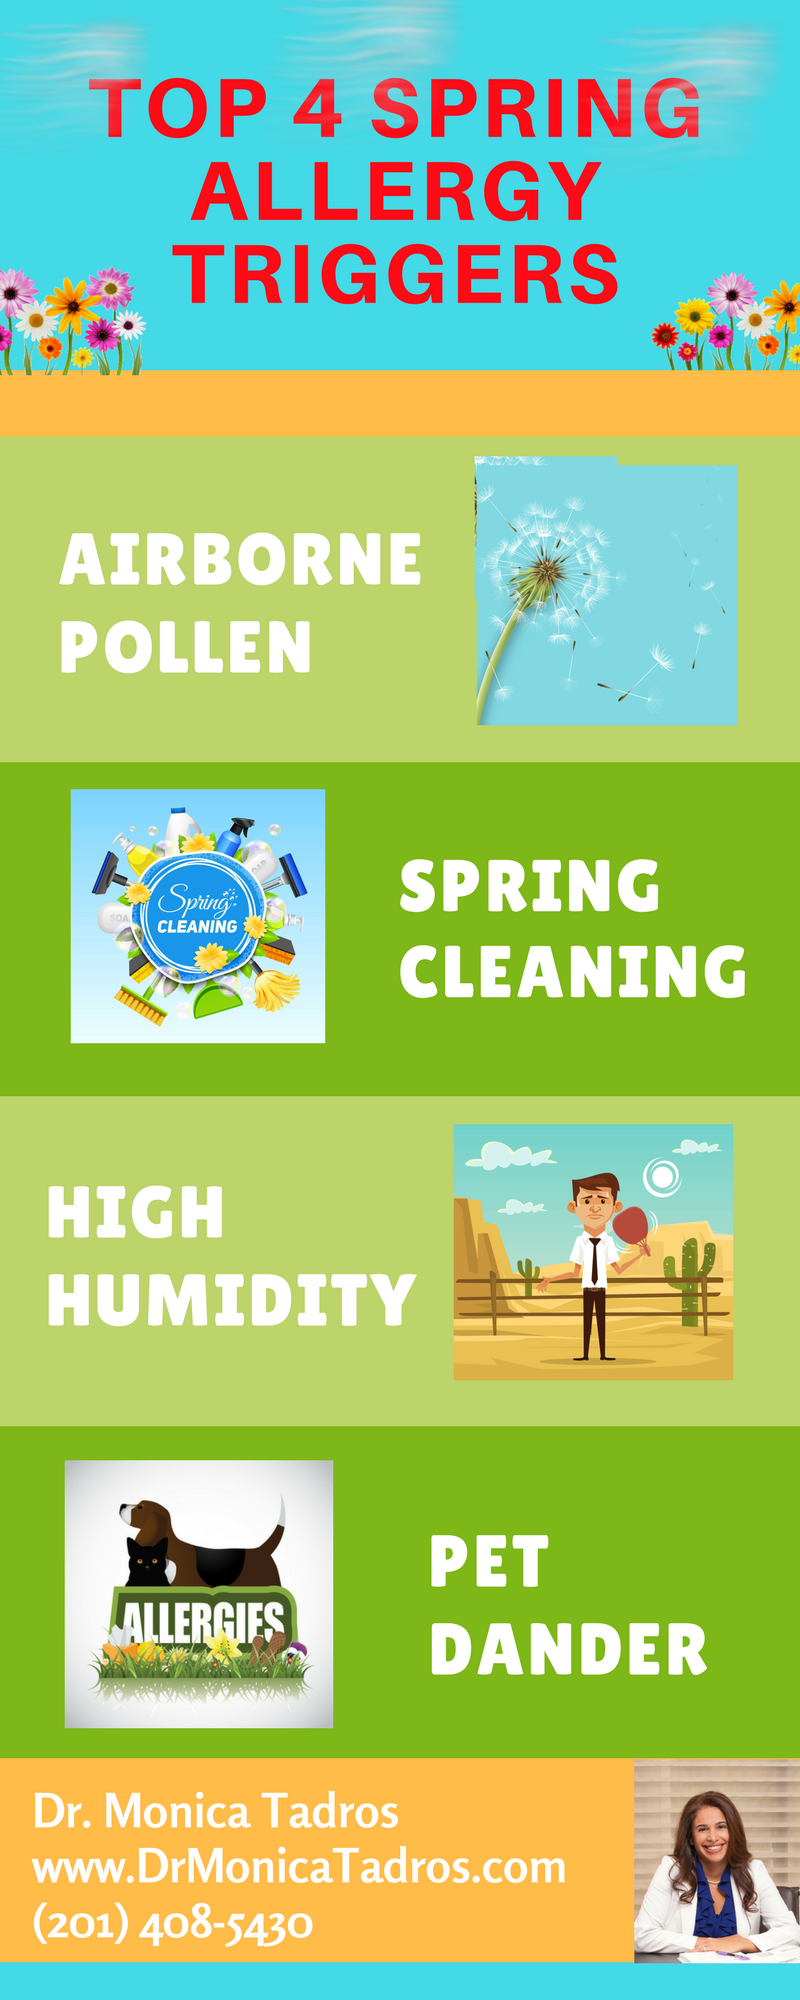 Top 4 Spring Allergy Triggers Tom La Vecchia Medium Triggering Of Flip Flops Although I Welcome Short Sleeves And Suffer From Seasonal Allergies With That Said Was Looking Into What The For These